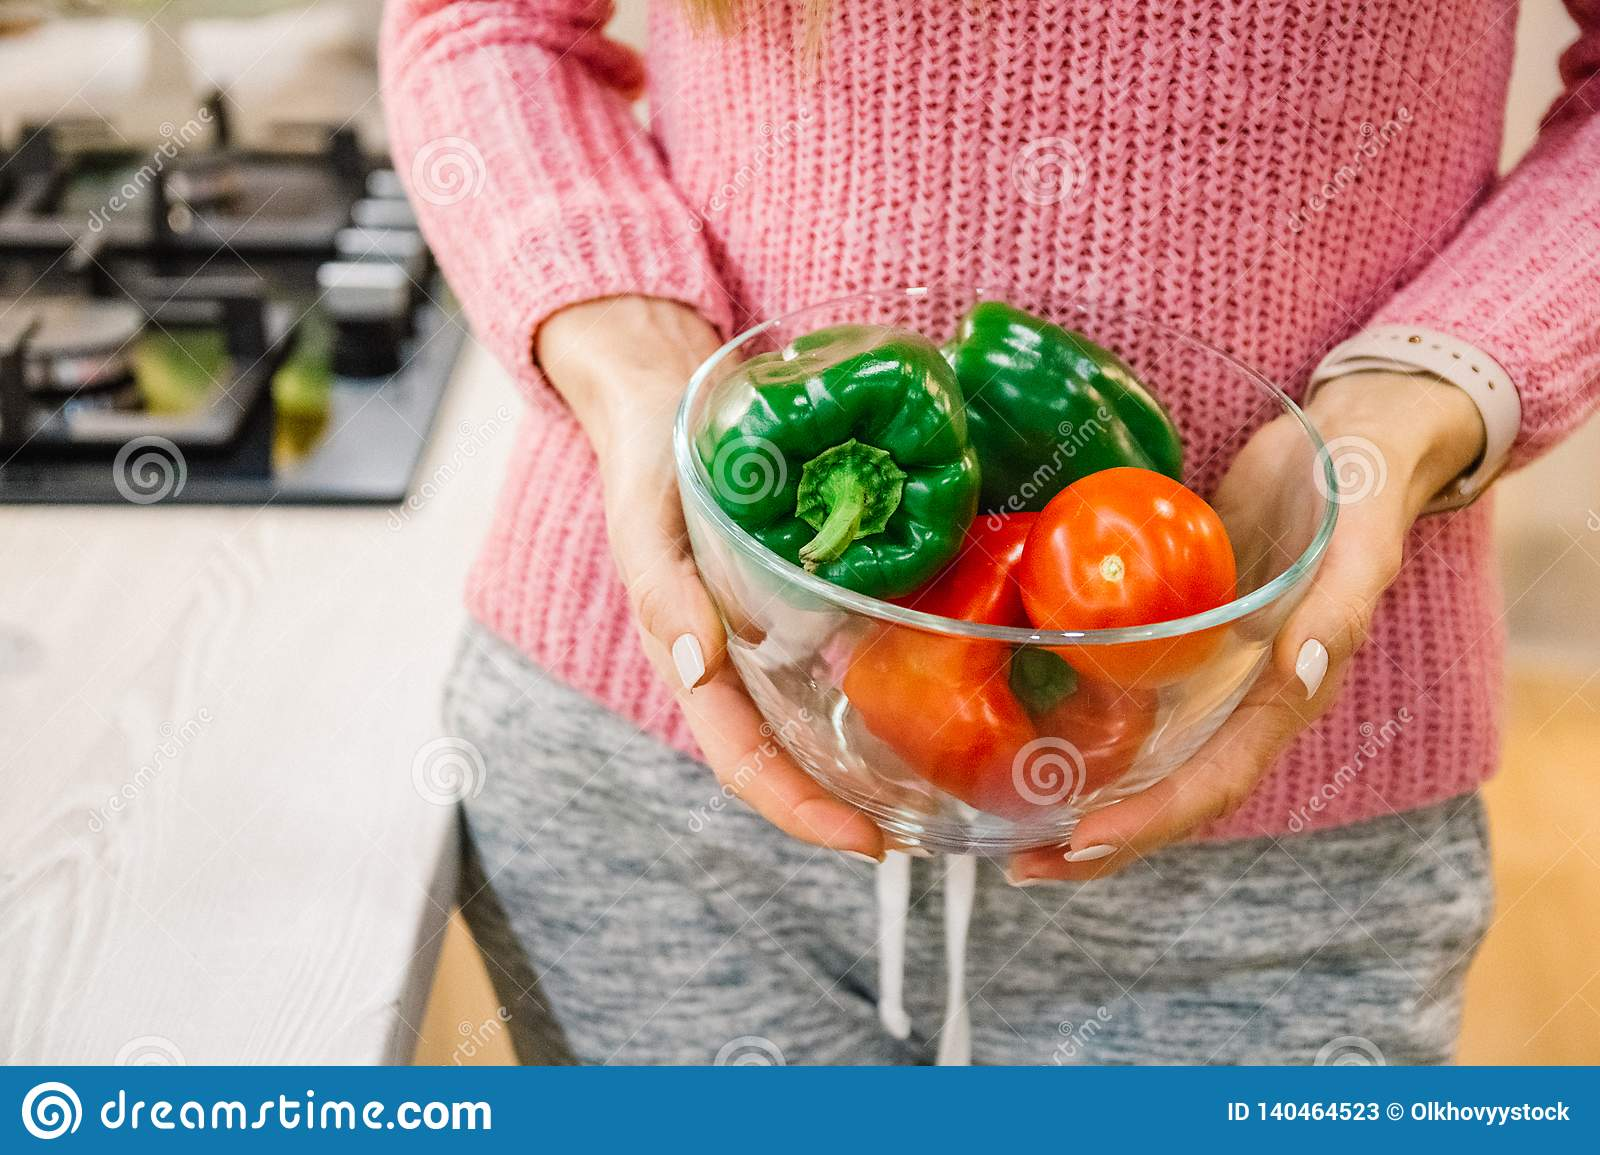 Hands washing fresh vegetables paprika red, green, yellow, in glass bowl